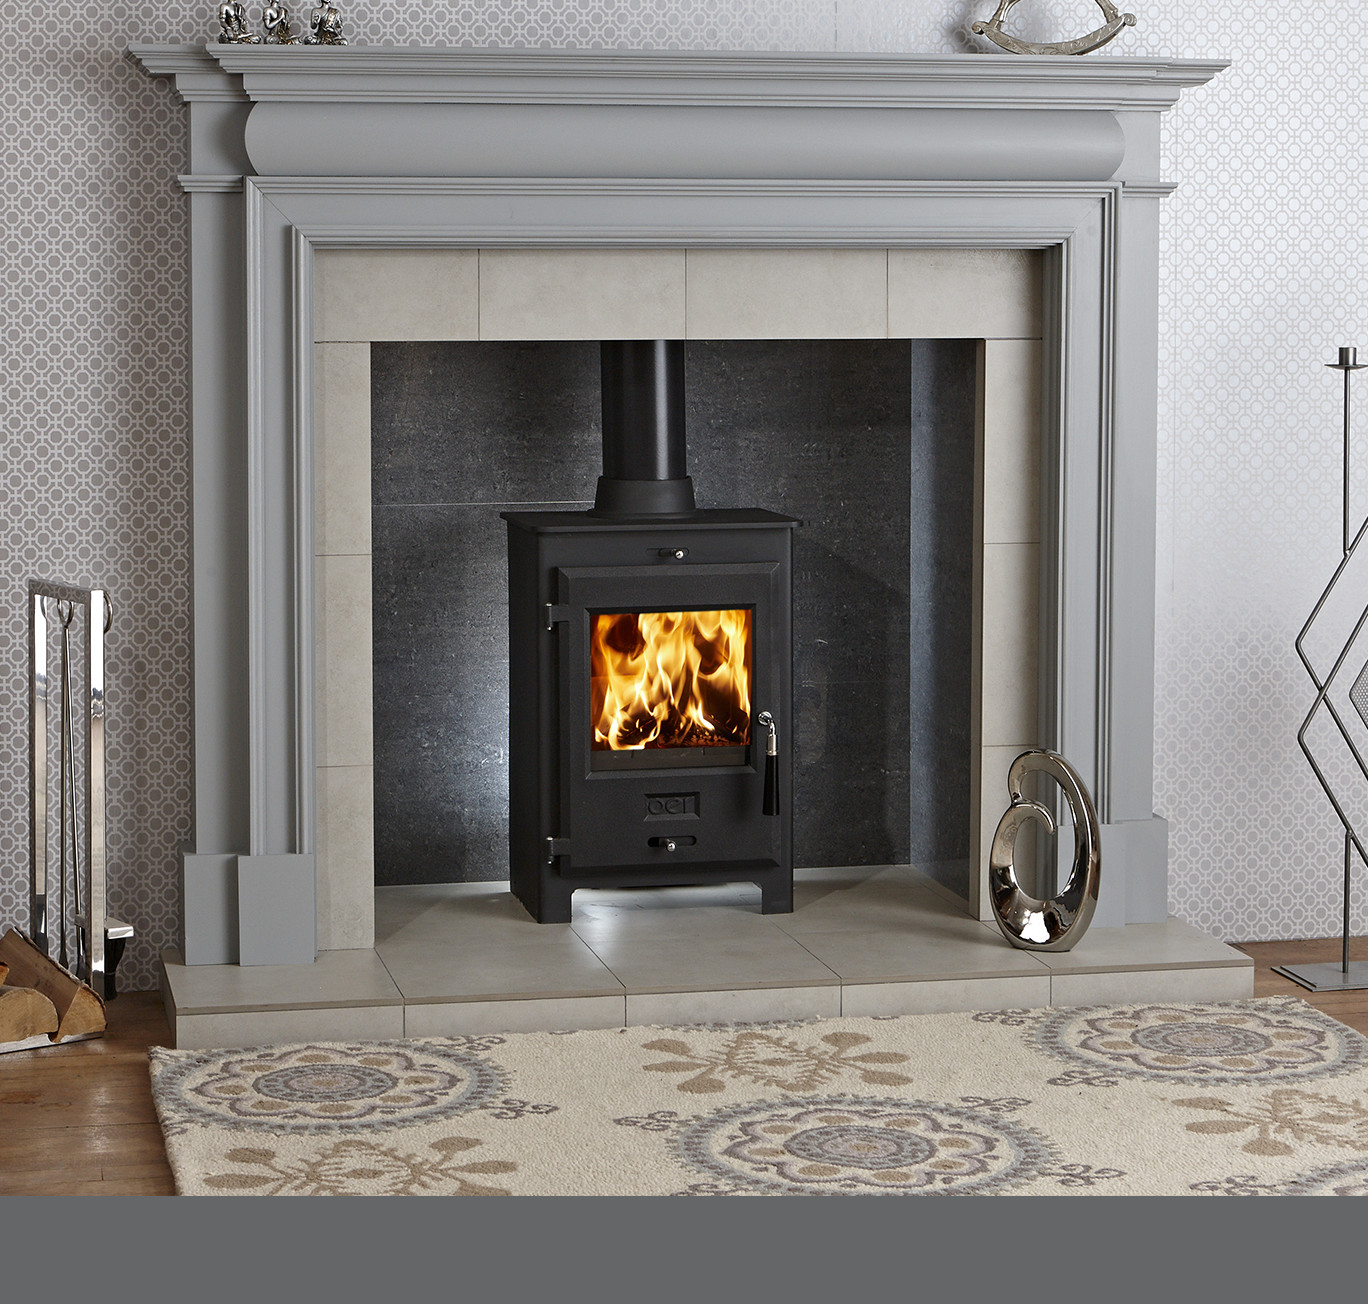 Cheltenham Wooden Painted Fireplace, How To Paint A Wooden Fire Surround